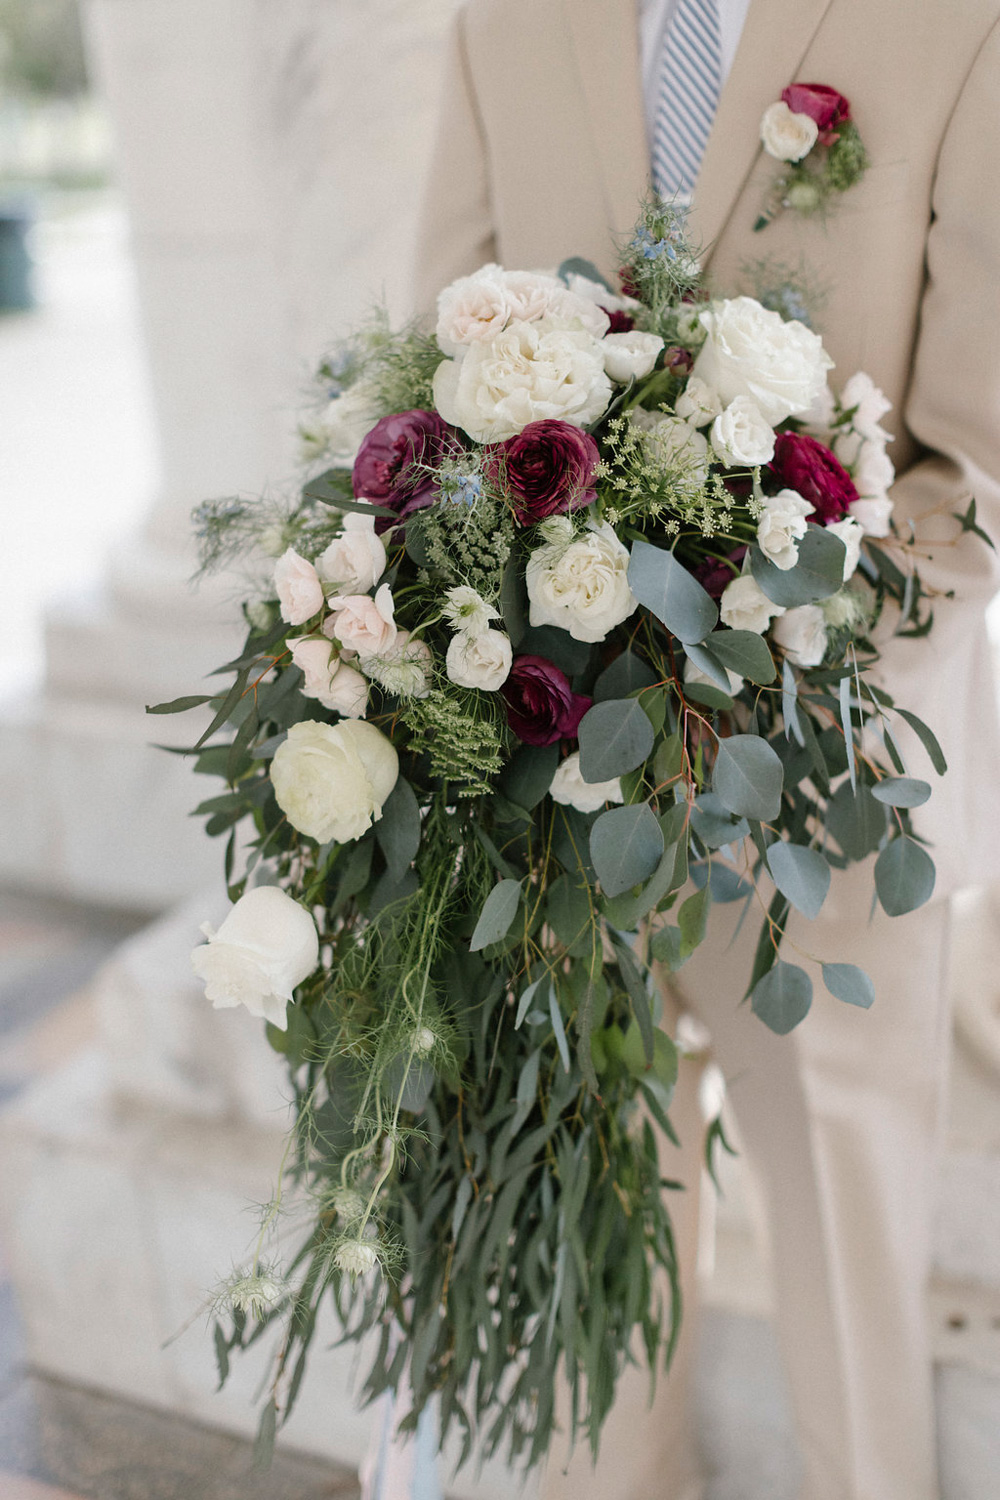 Groom with boutineer holding bride's over-sized cascade bouquet - fresh flowers